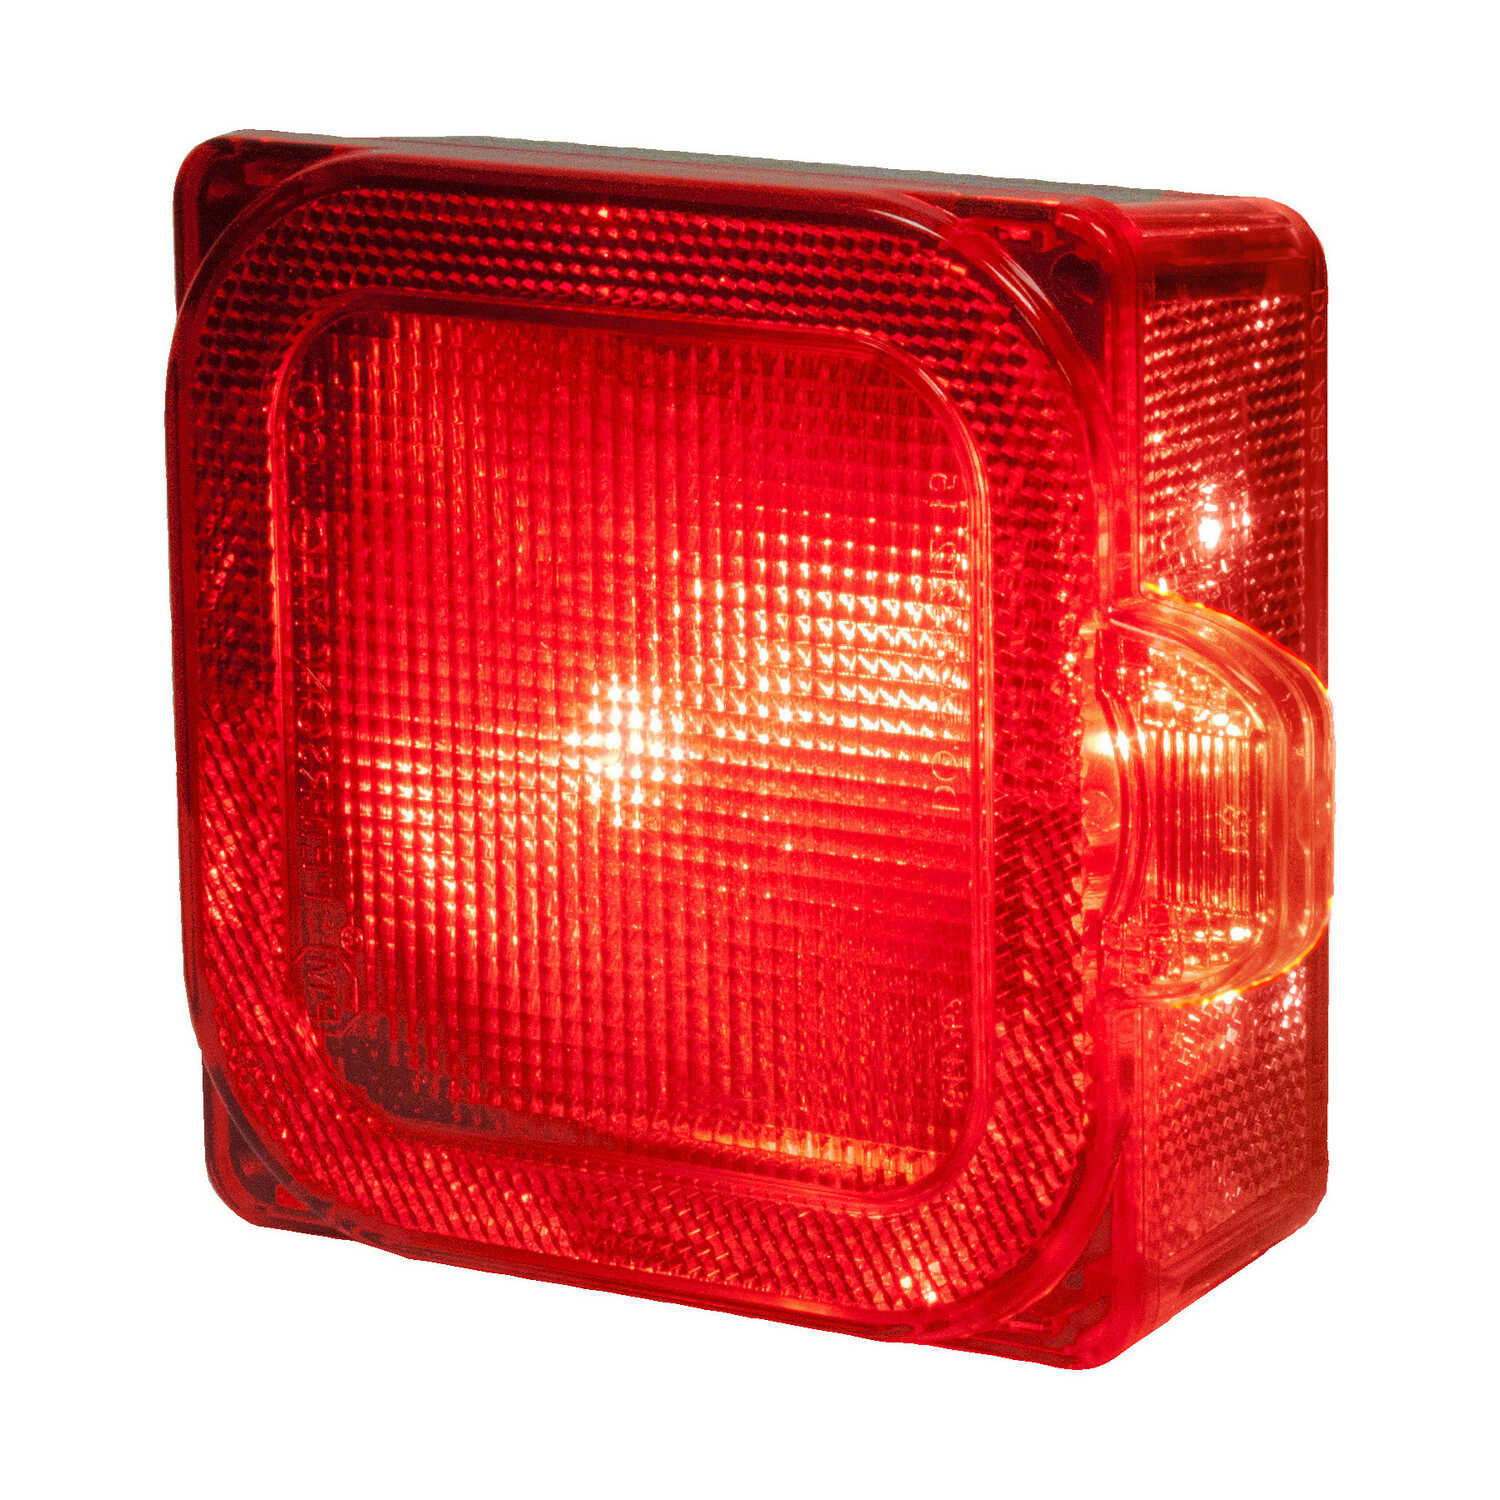 Peterson  Submersible  Mounting  Stop / Turn / Tail Light